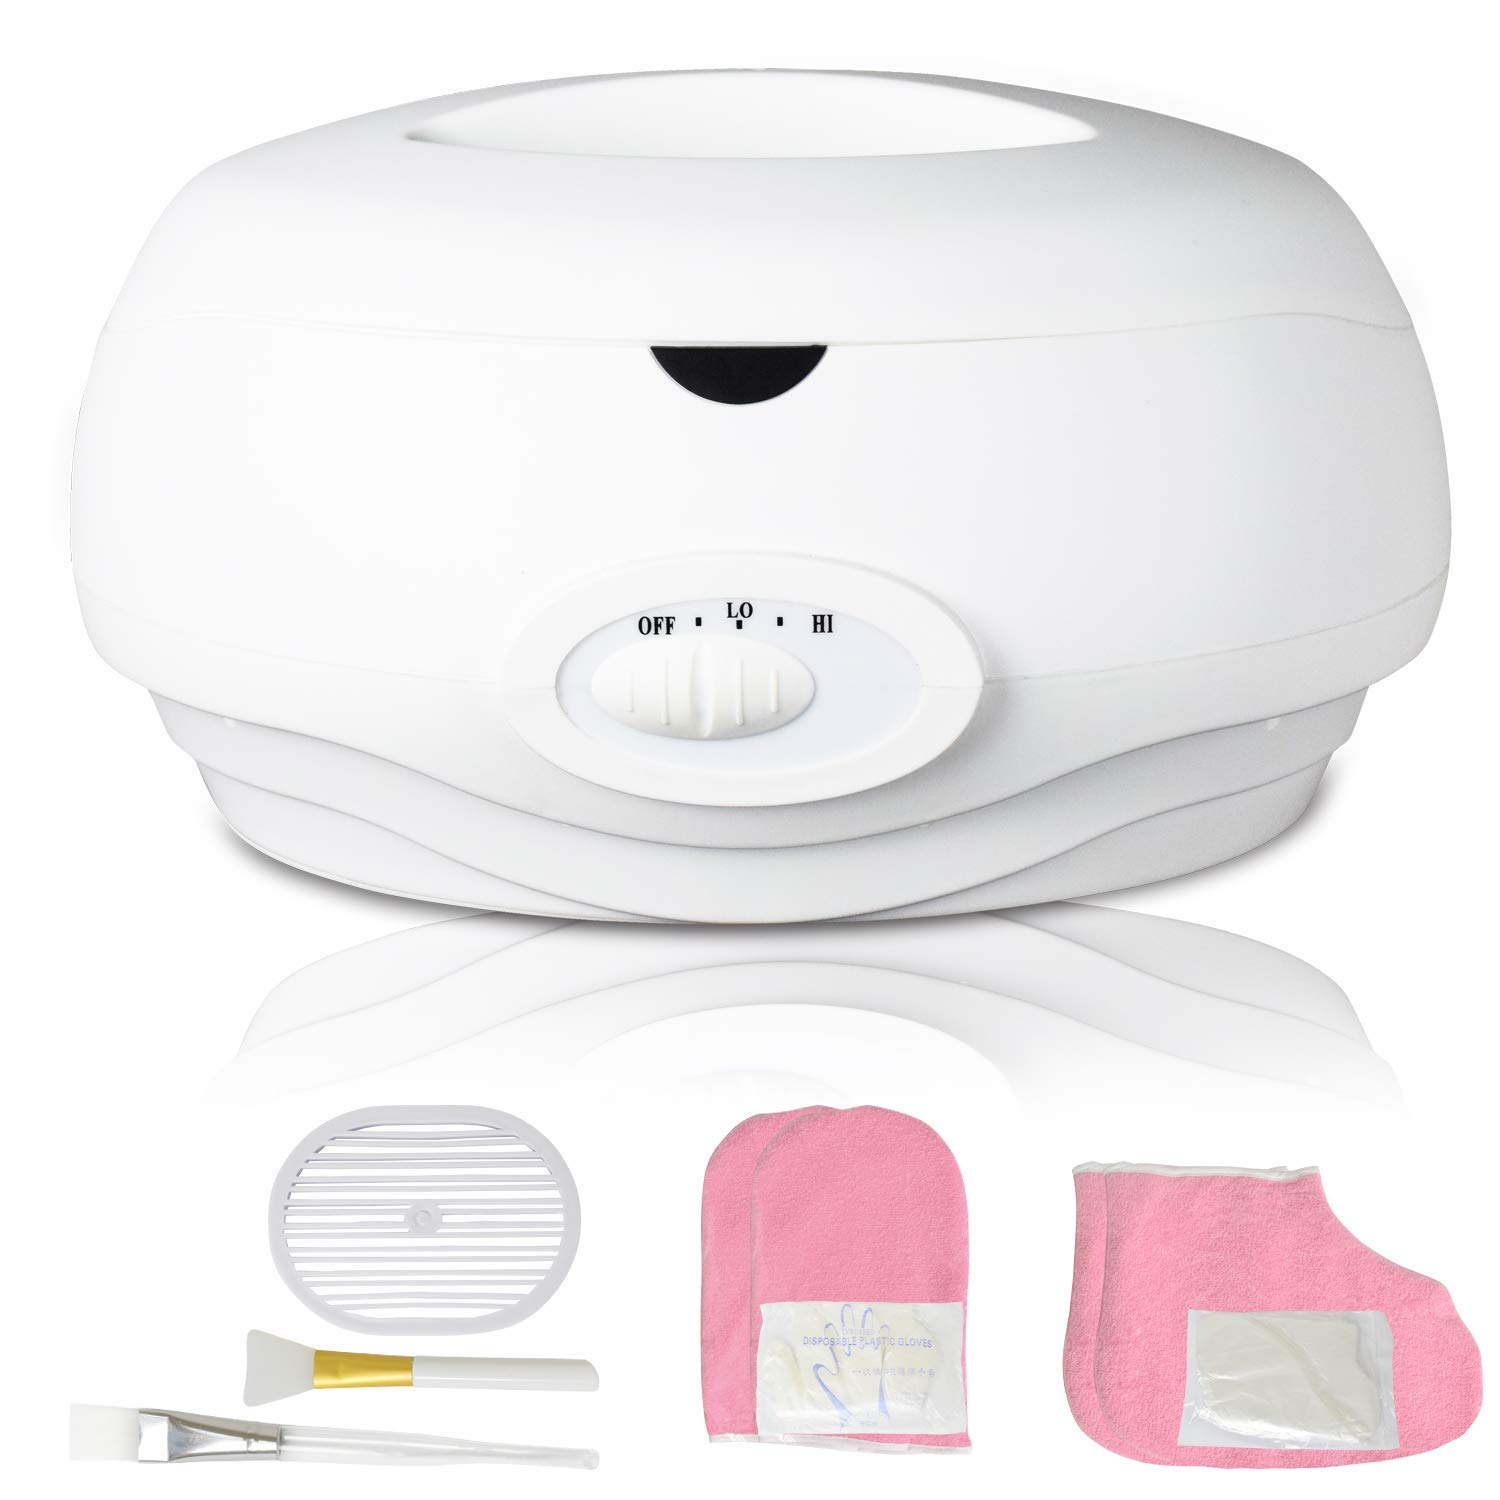 K-Salon Paraffin Wax Machine Paraffin Bath Quick Heating Wax Warmer for Hand and Feet